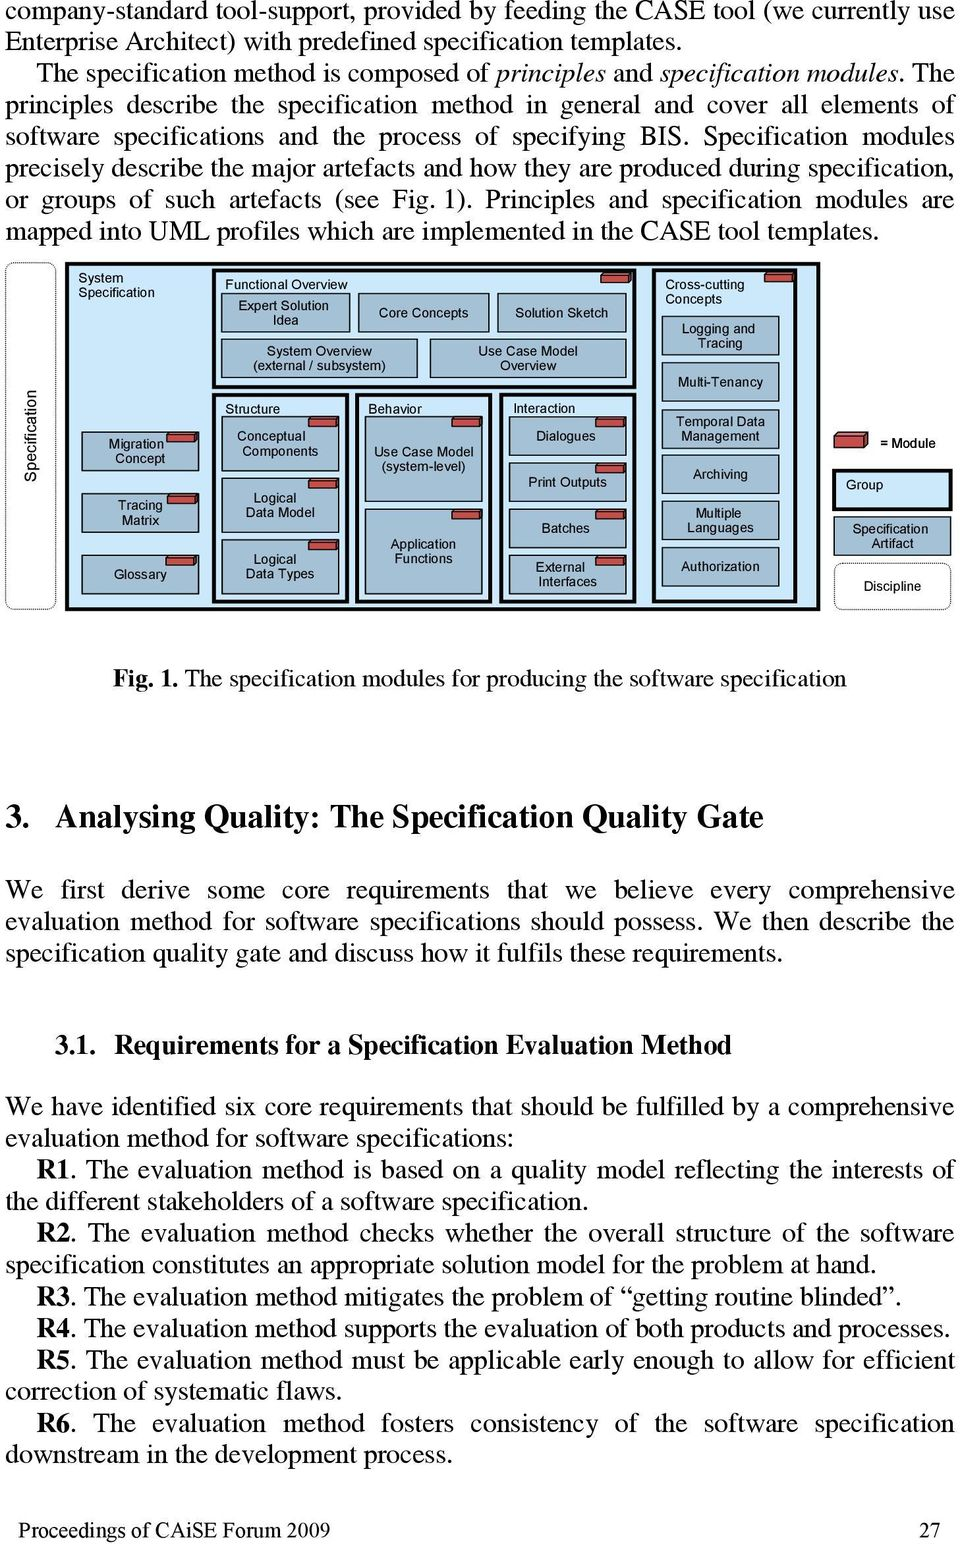 The principles describe the specification method in general and cover all elements of software specifications and the process of specifying BIS.